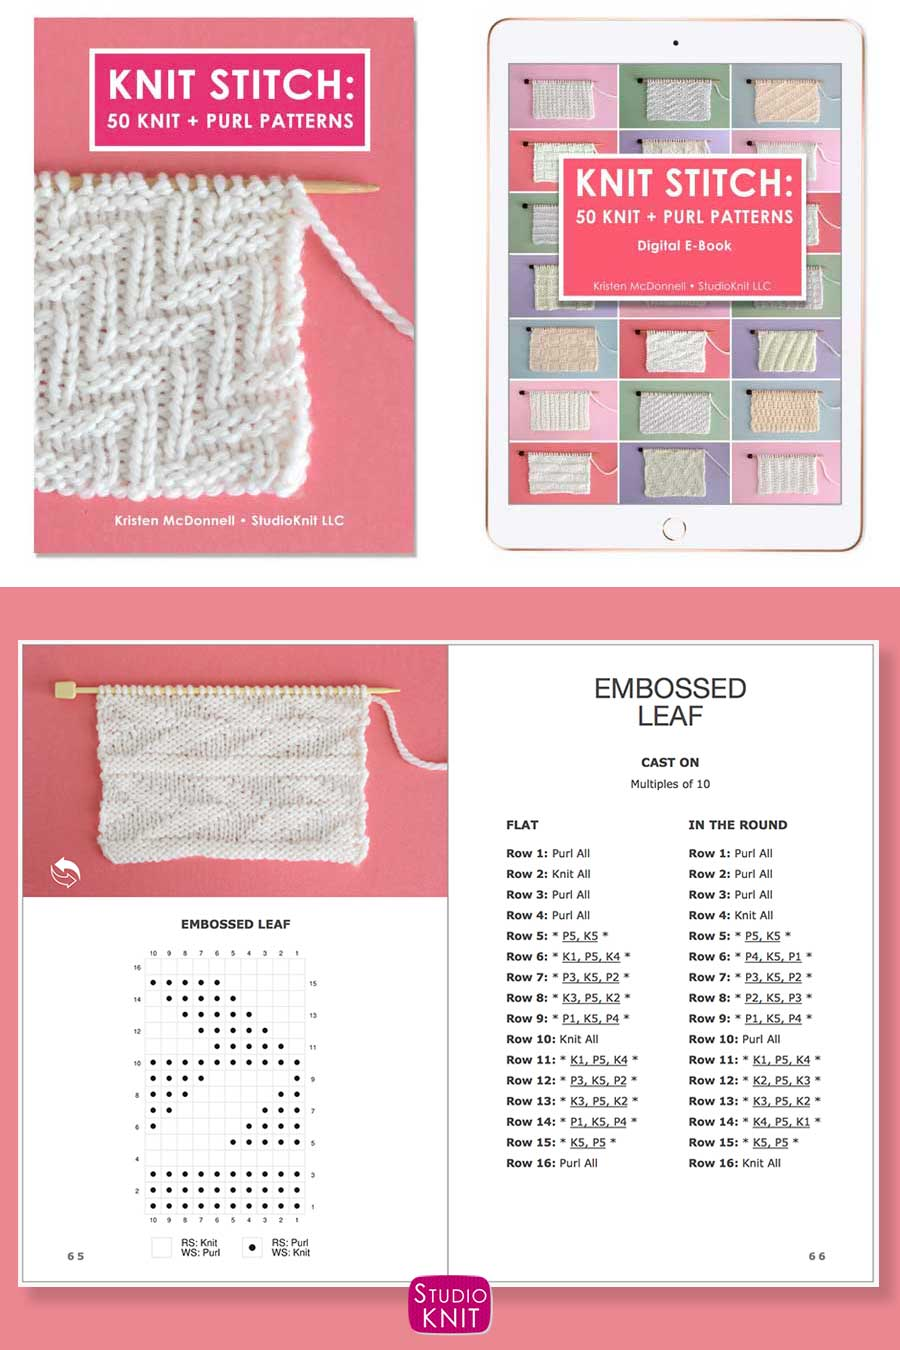 Knit Stitch Pattern Book with Embossed Leaf Stitch Pattern by Studio Knit. #StudioKnit #knitting #knitstitchpattern #knittingstitches